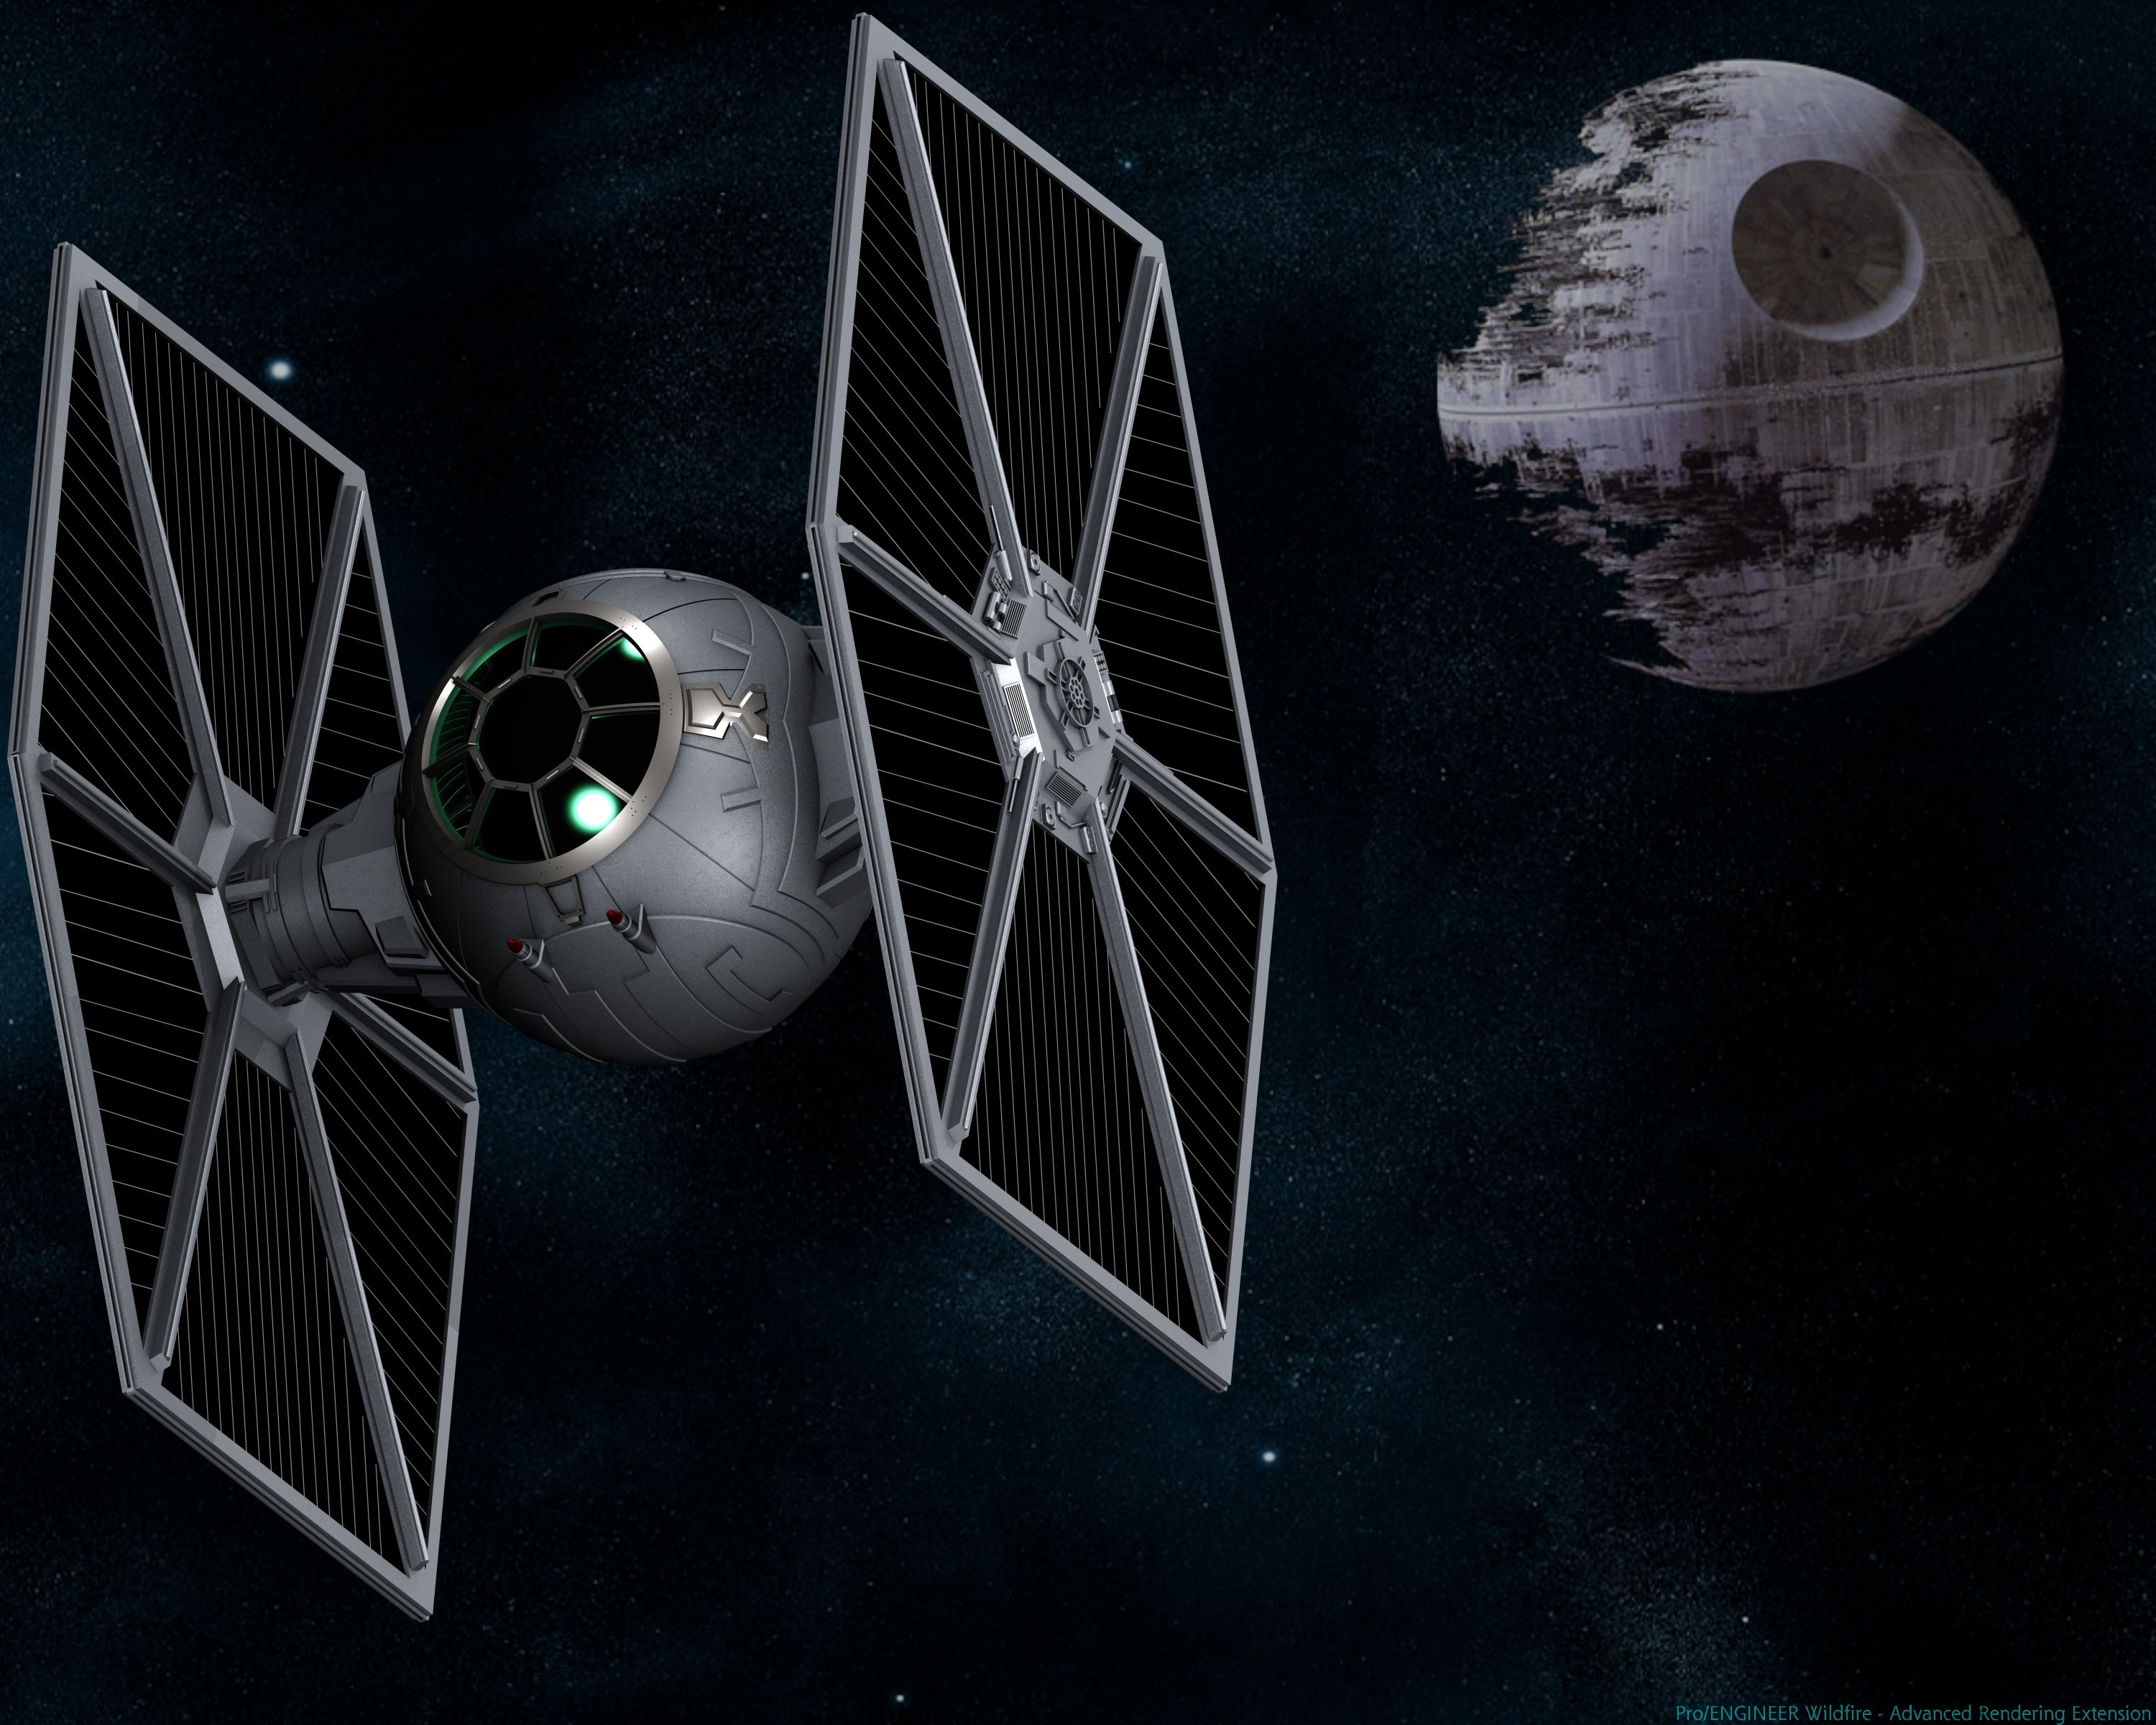 70 Tie Fighter Wallpaper On Wallpapersafari